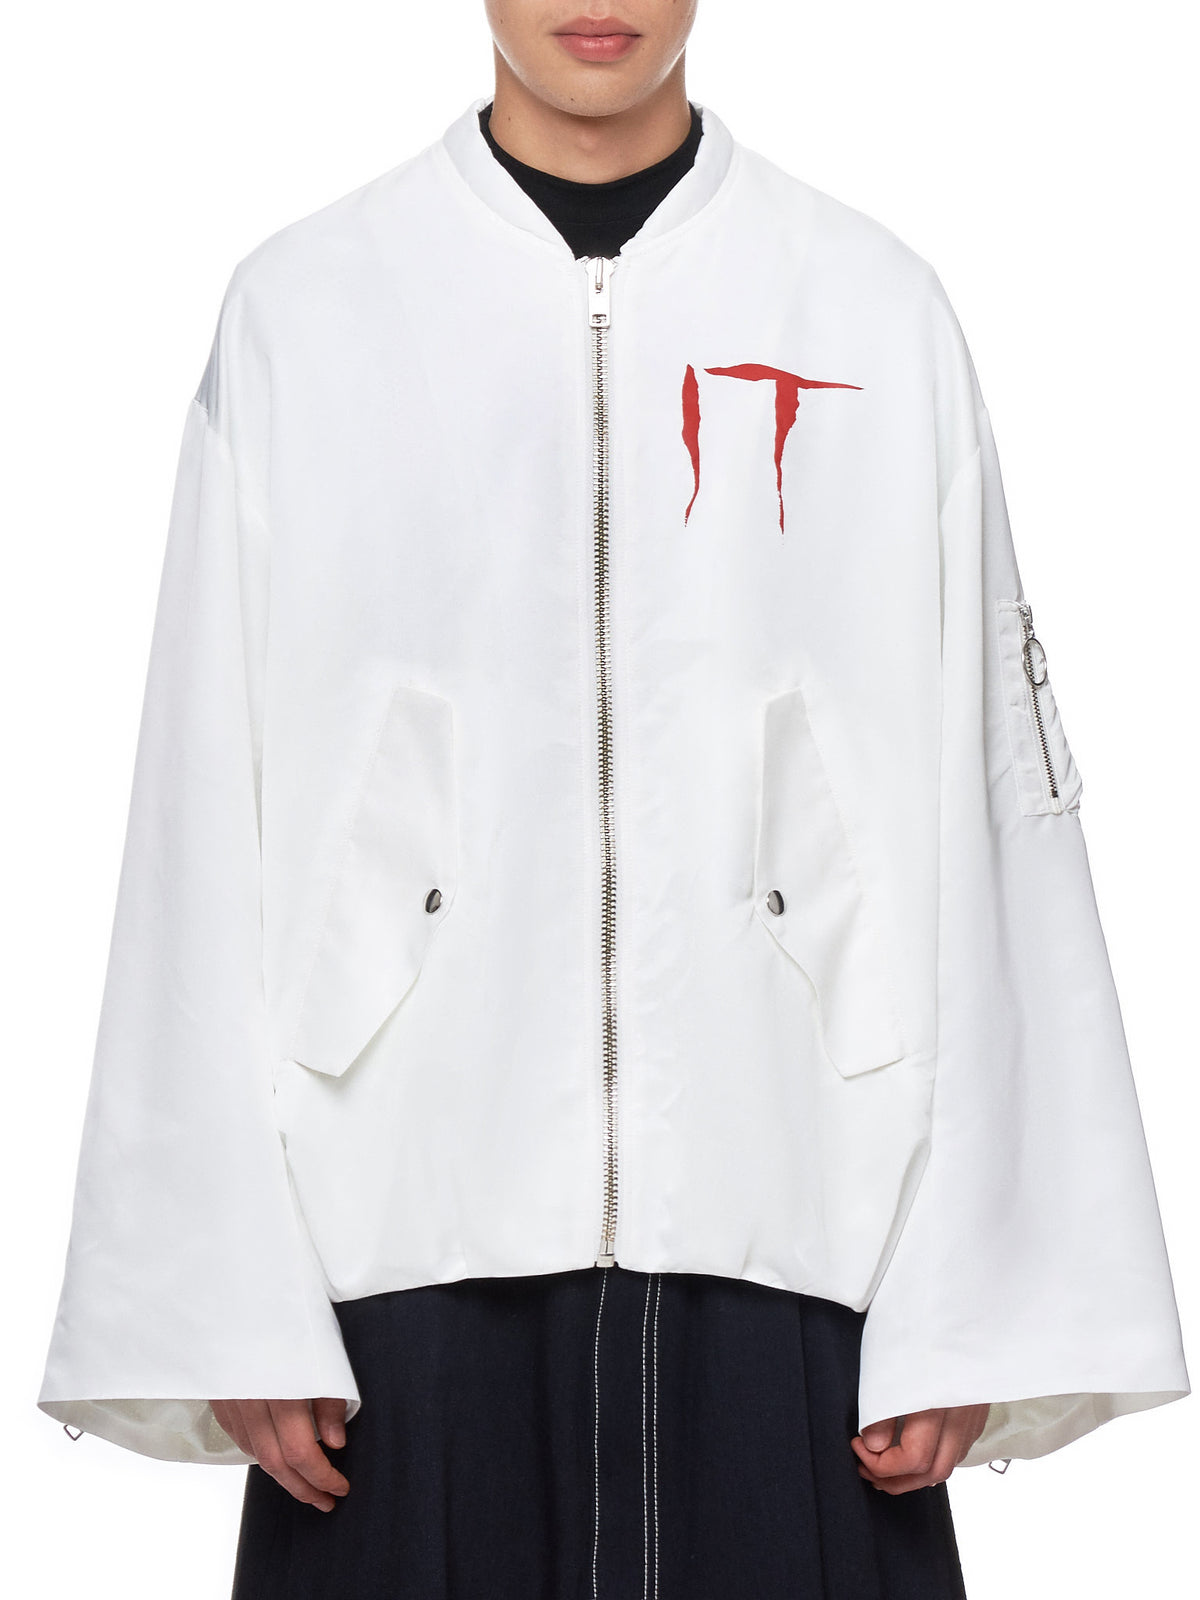 'No Love Lost' Bomber Jacket (KL341-WHITE)